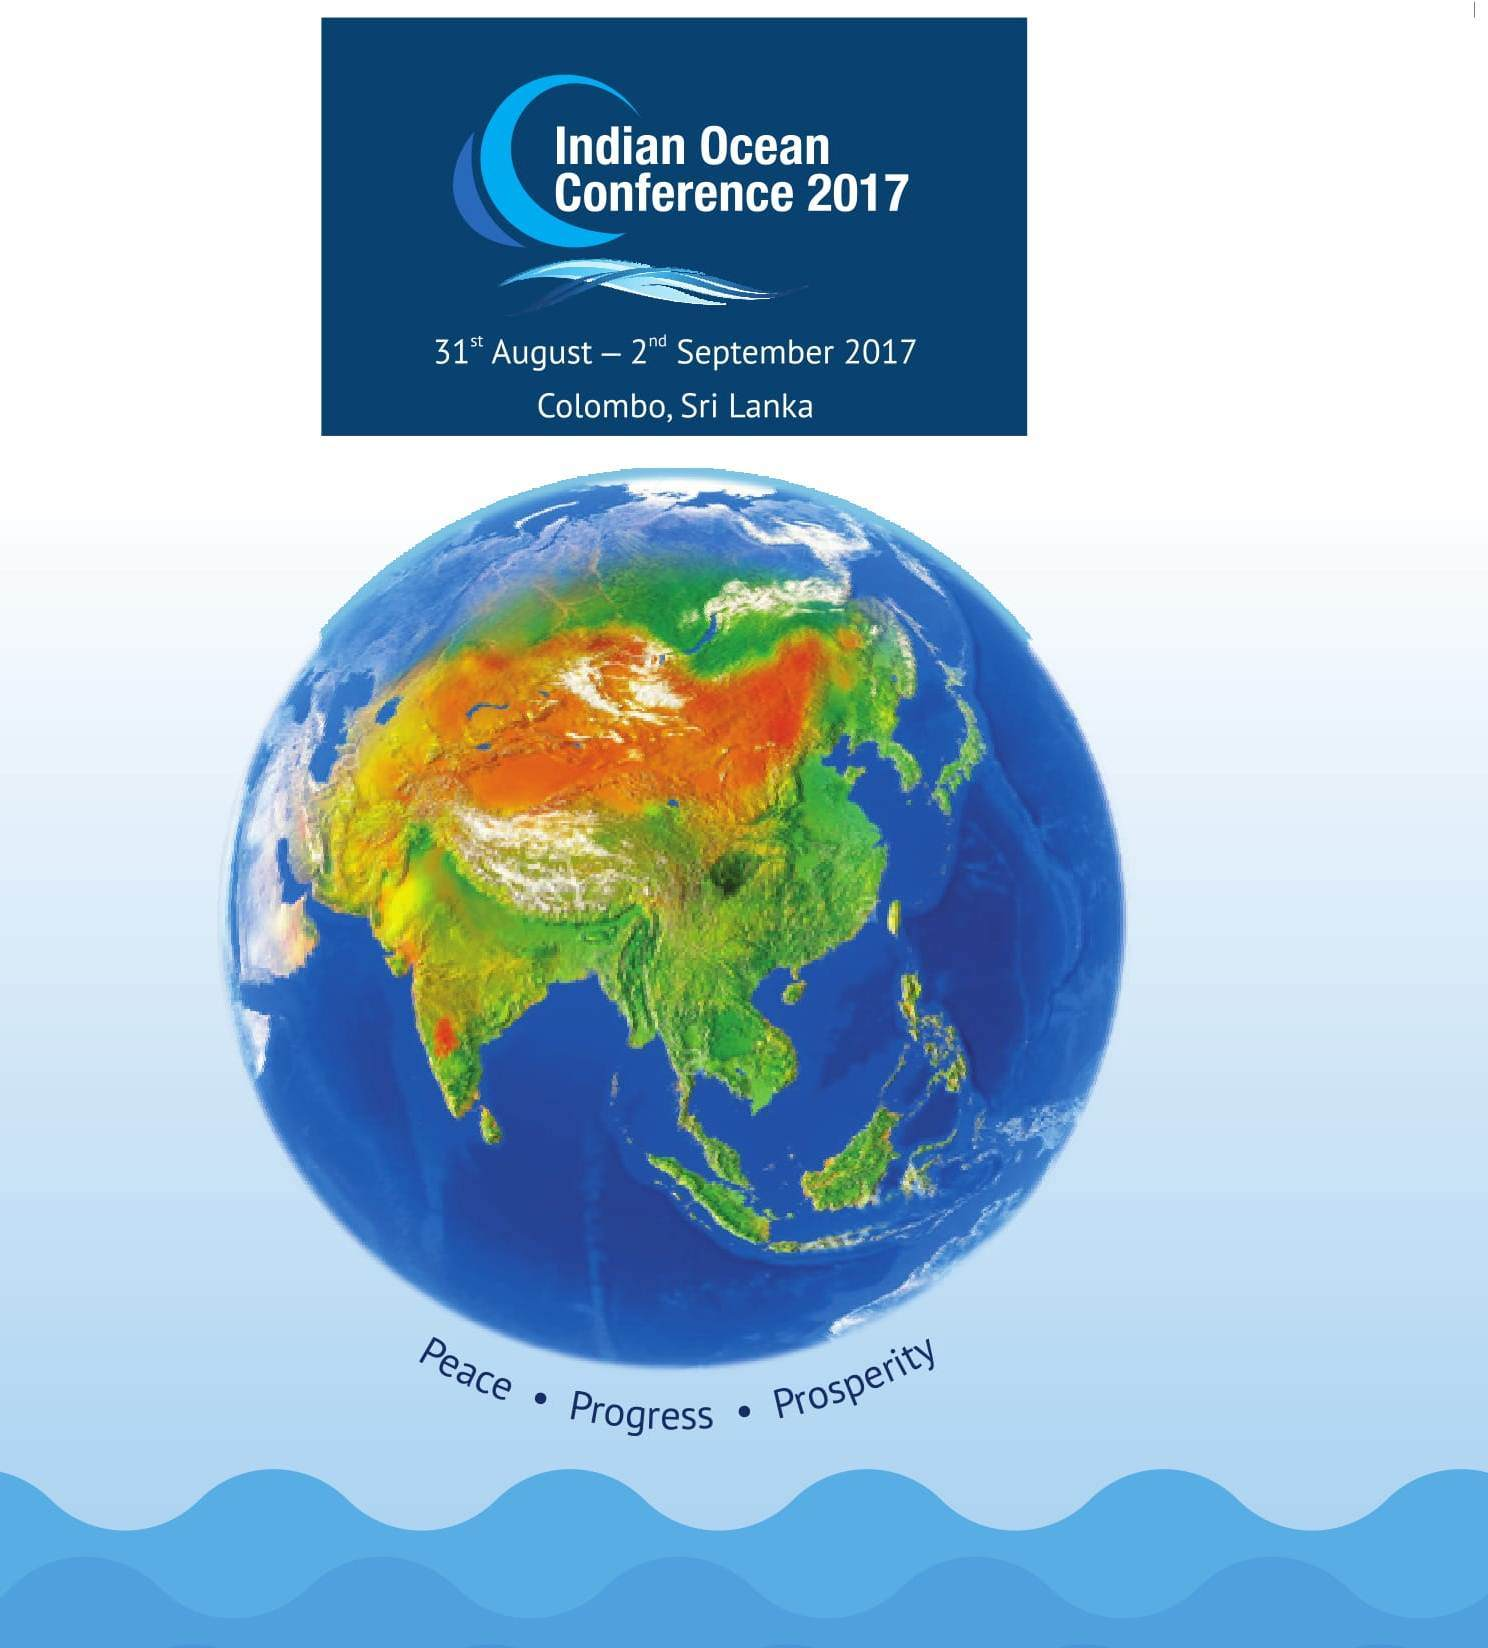 Indian Ocean Conference 2017